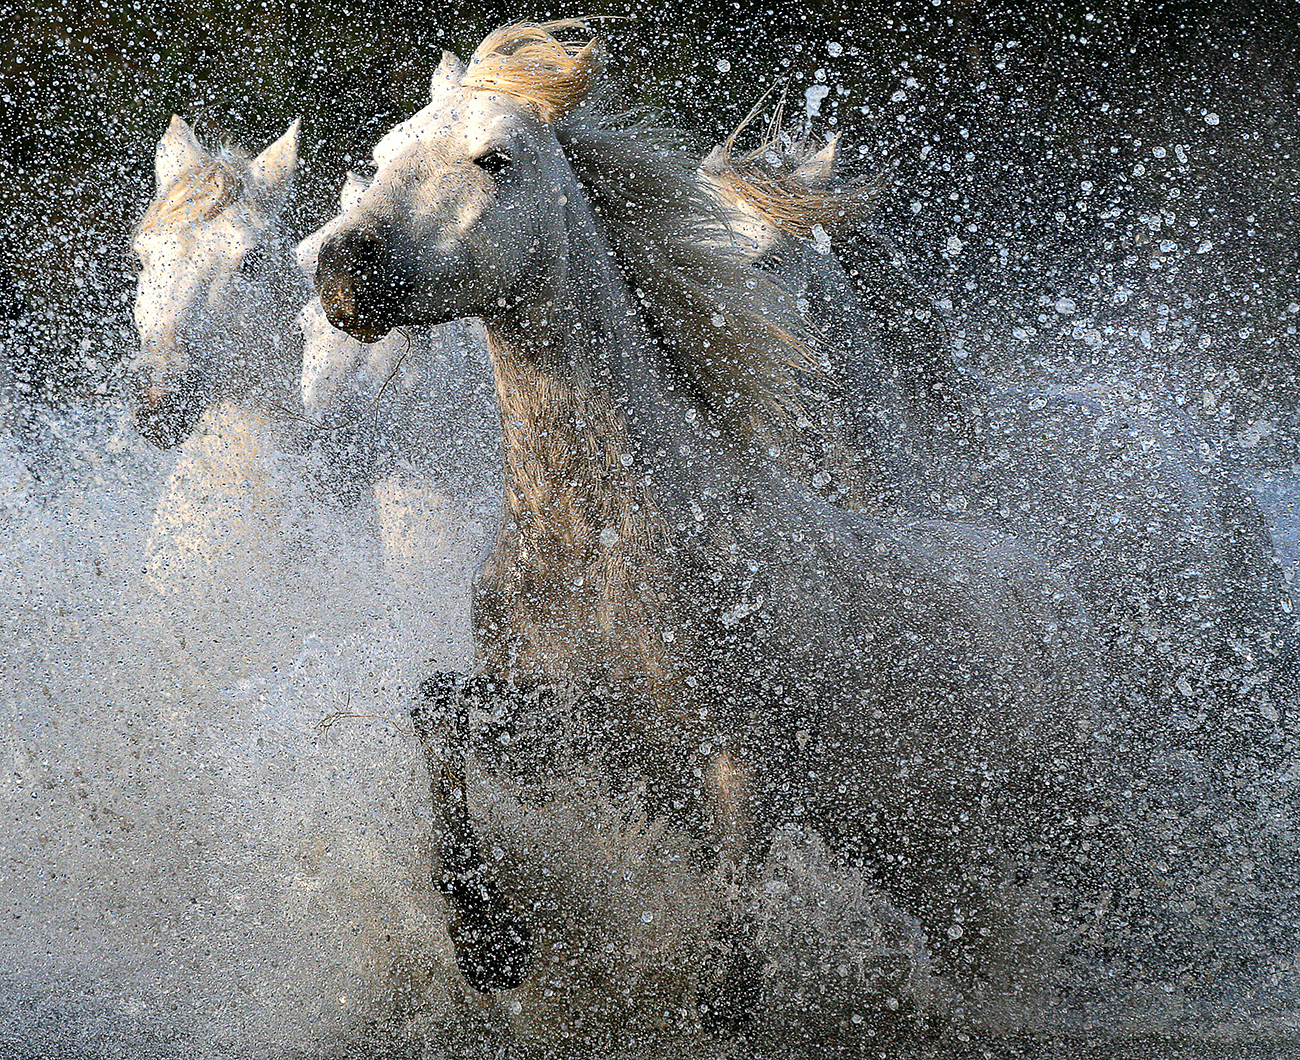 Camargue horses by Lisa Mardell